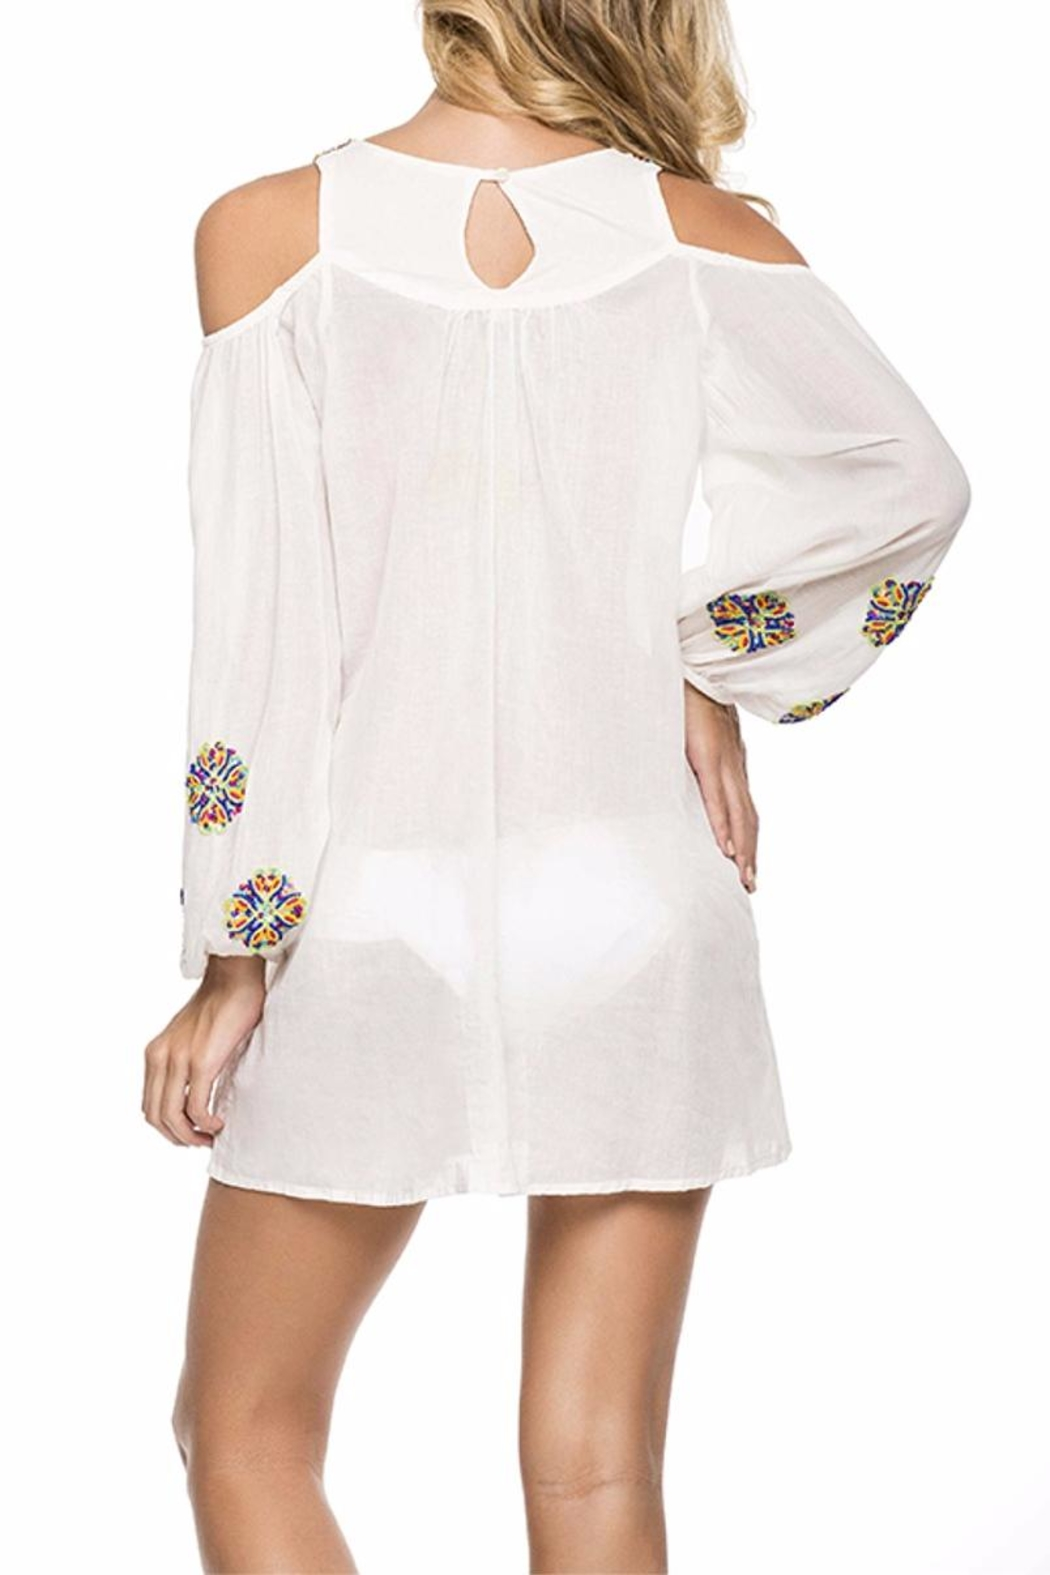 Onda de Mar Embroidered Tunic - Front Full Image